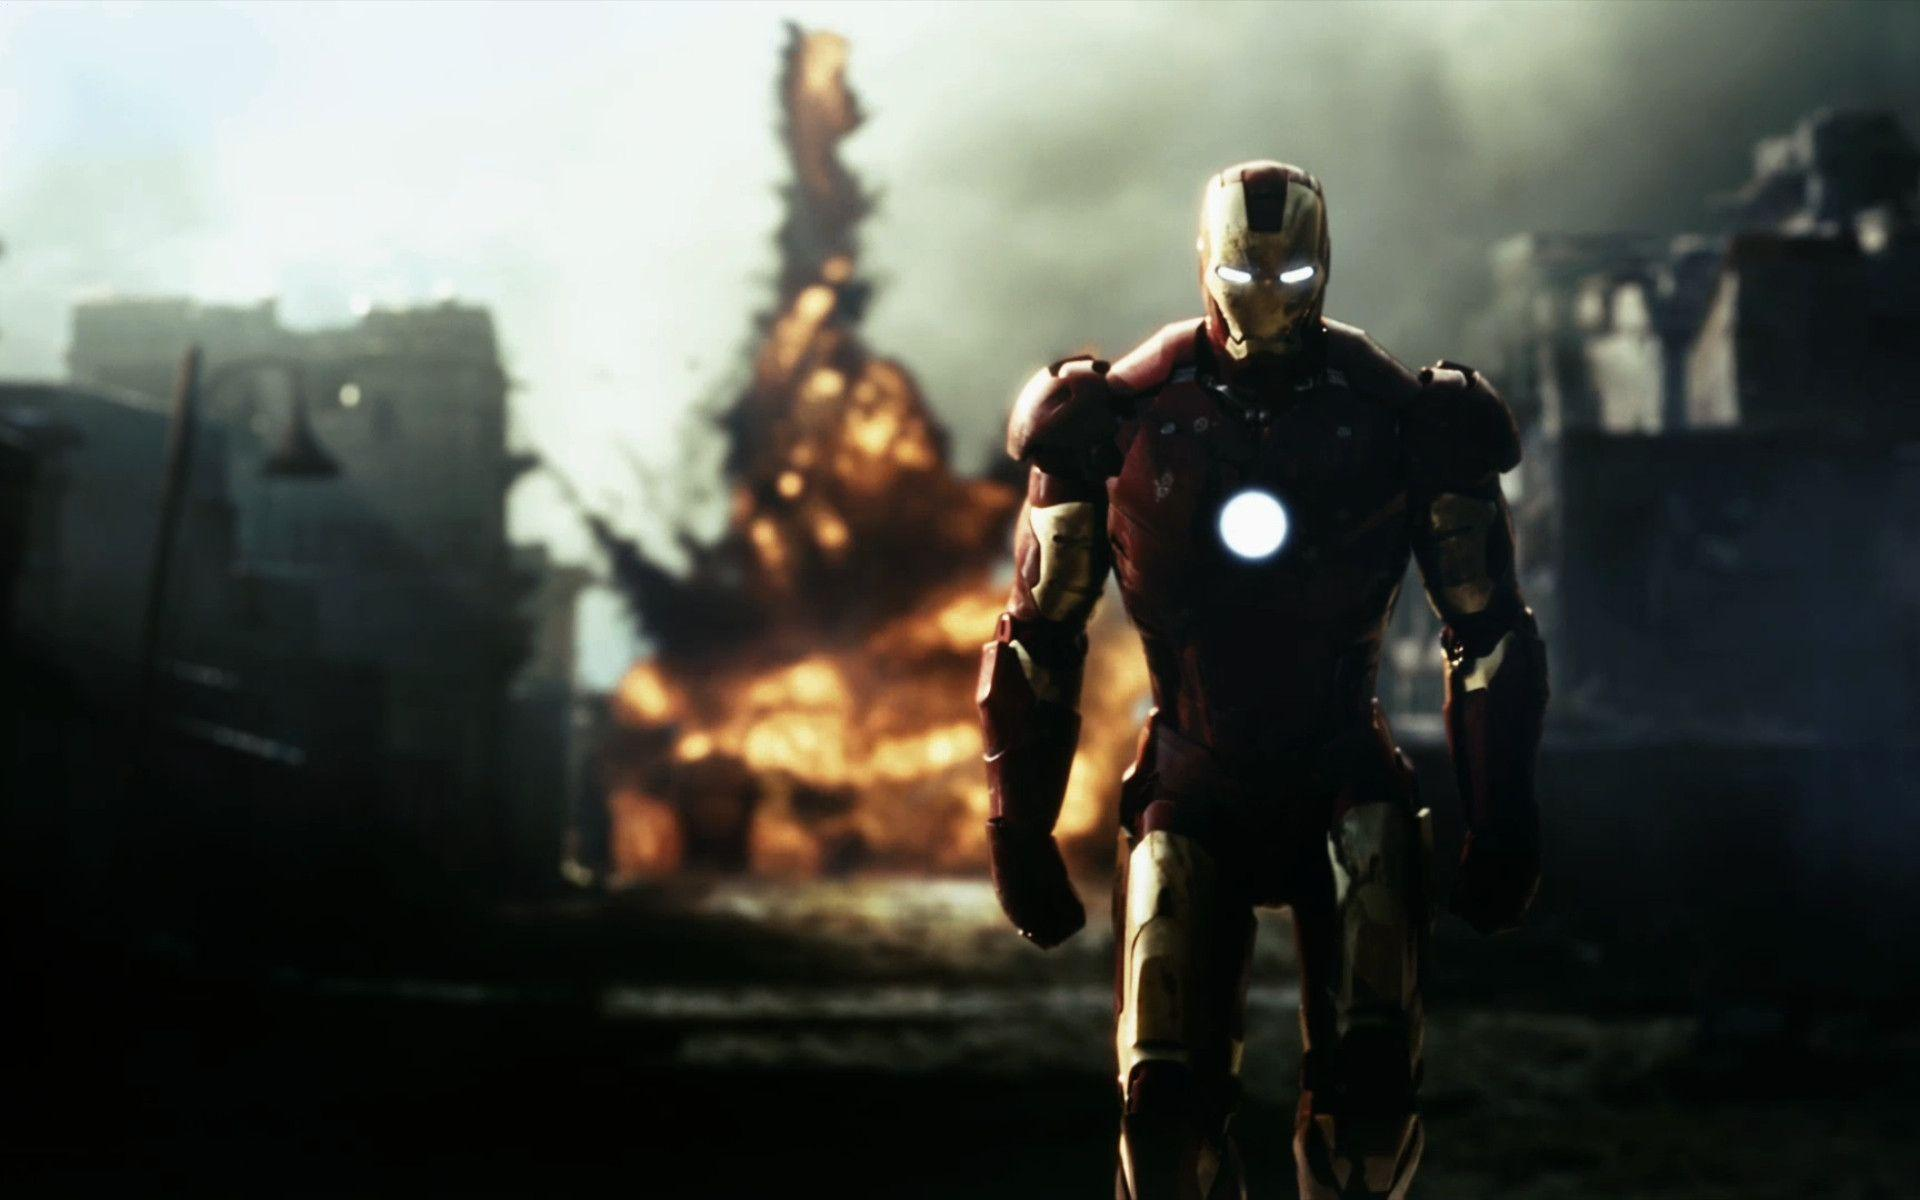 Iron man movie wallpapers wallpaper cave - Iron man 1 images ...